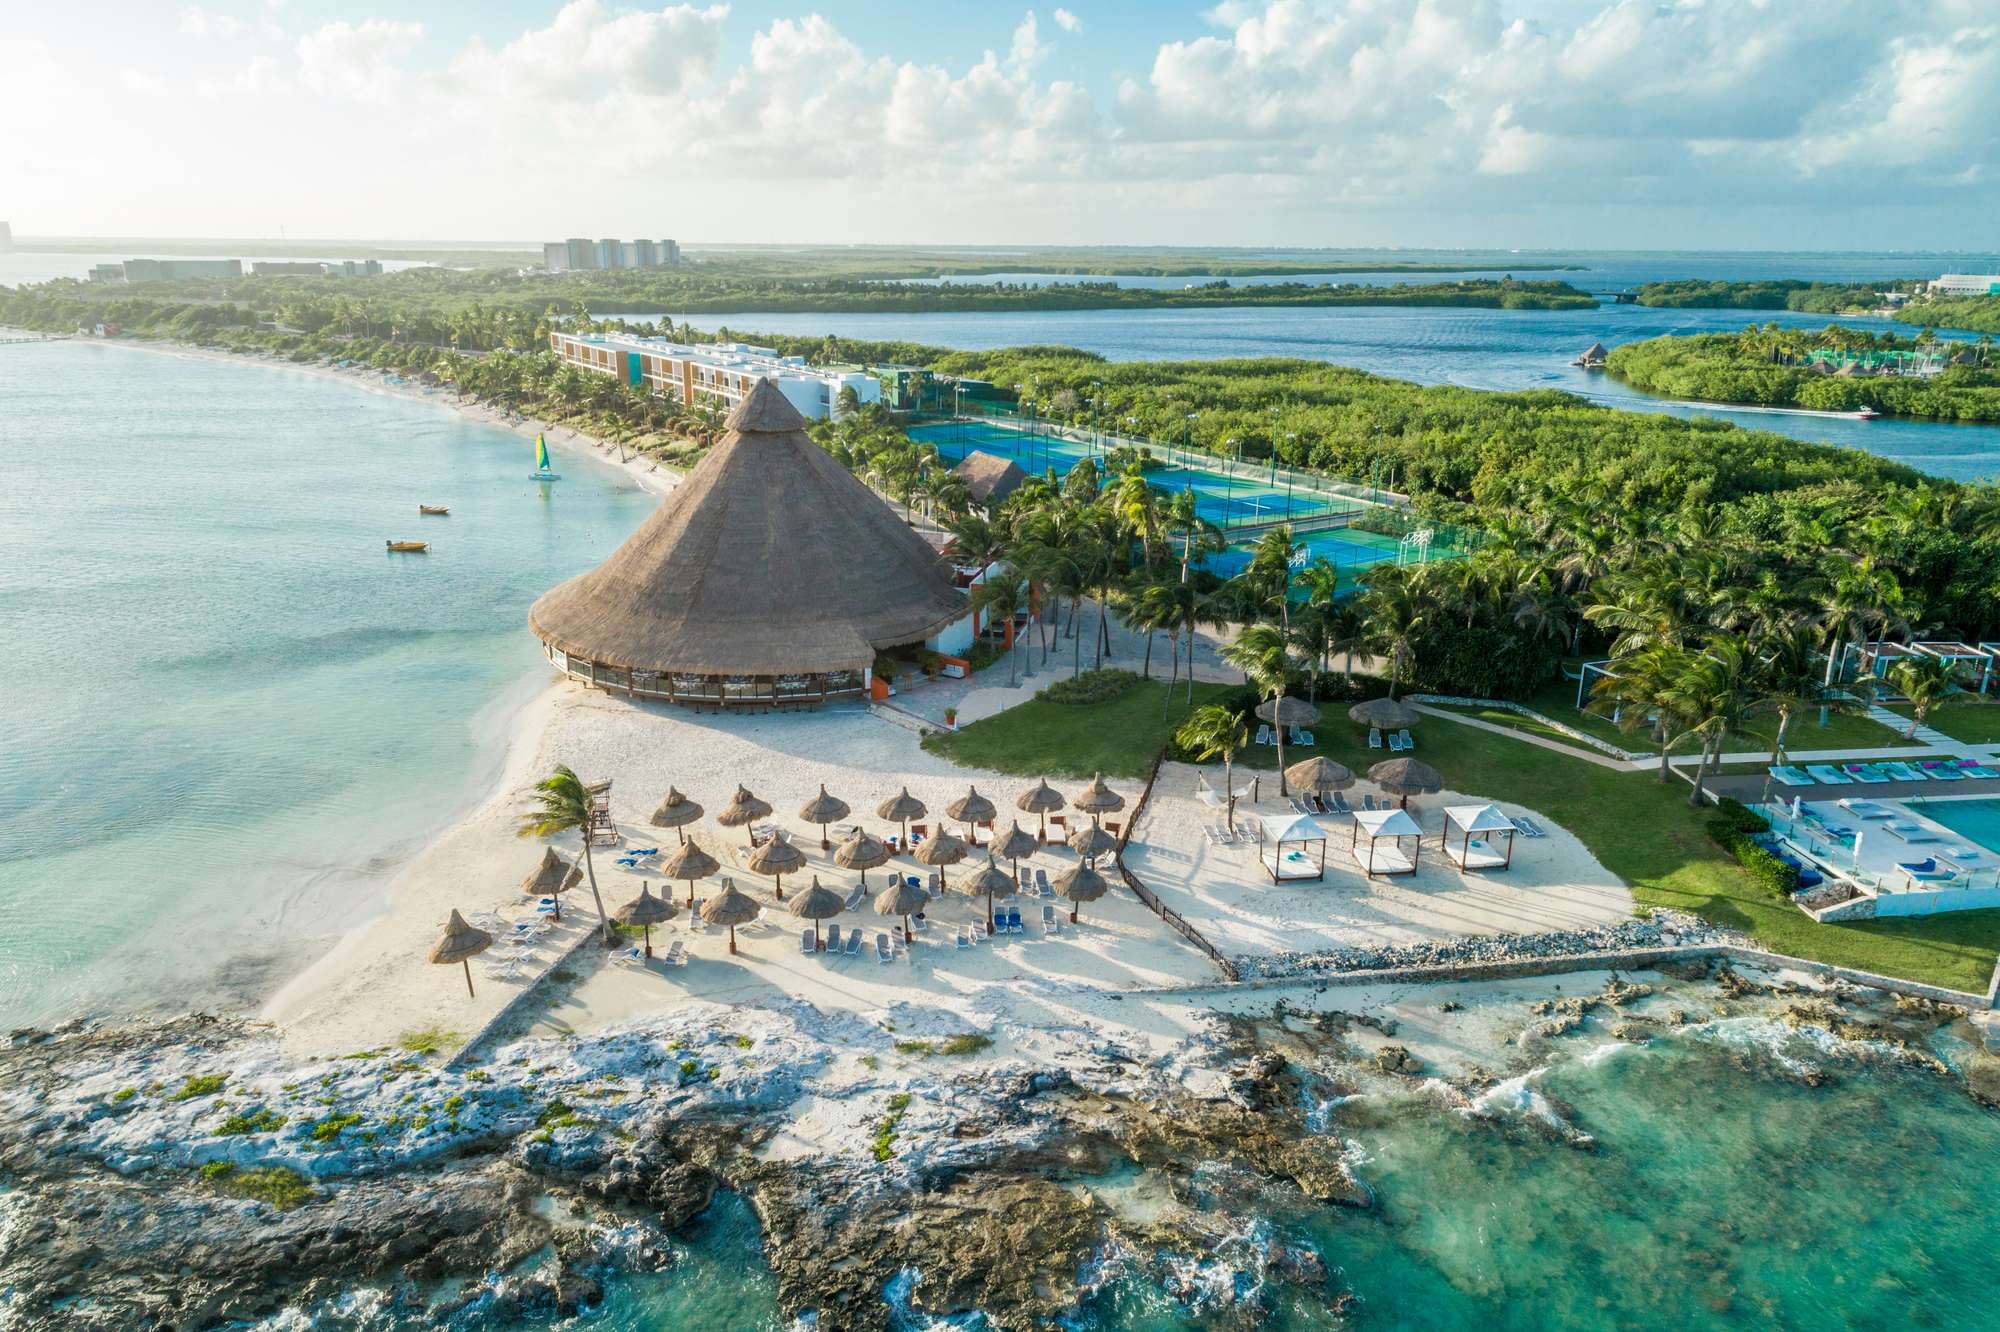 Https  ns.clubmed.com icp 1 media 01.villages 1.1mer cancun yucatan 32 31 30 29 28 27 26 25 24 23 22 21 20 19 18 17 16 15 14 13 12 11 10 9 8 7 6 5 4 3 2 1 photos canck117001